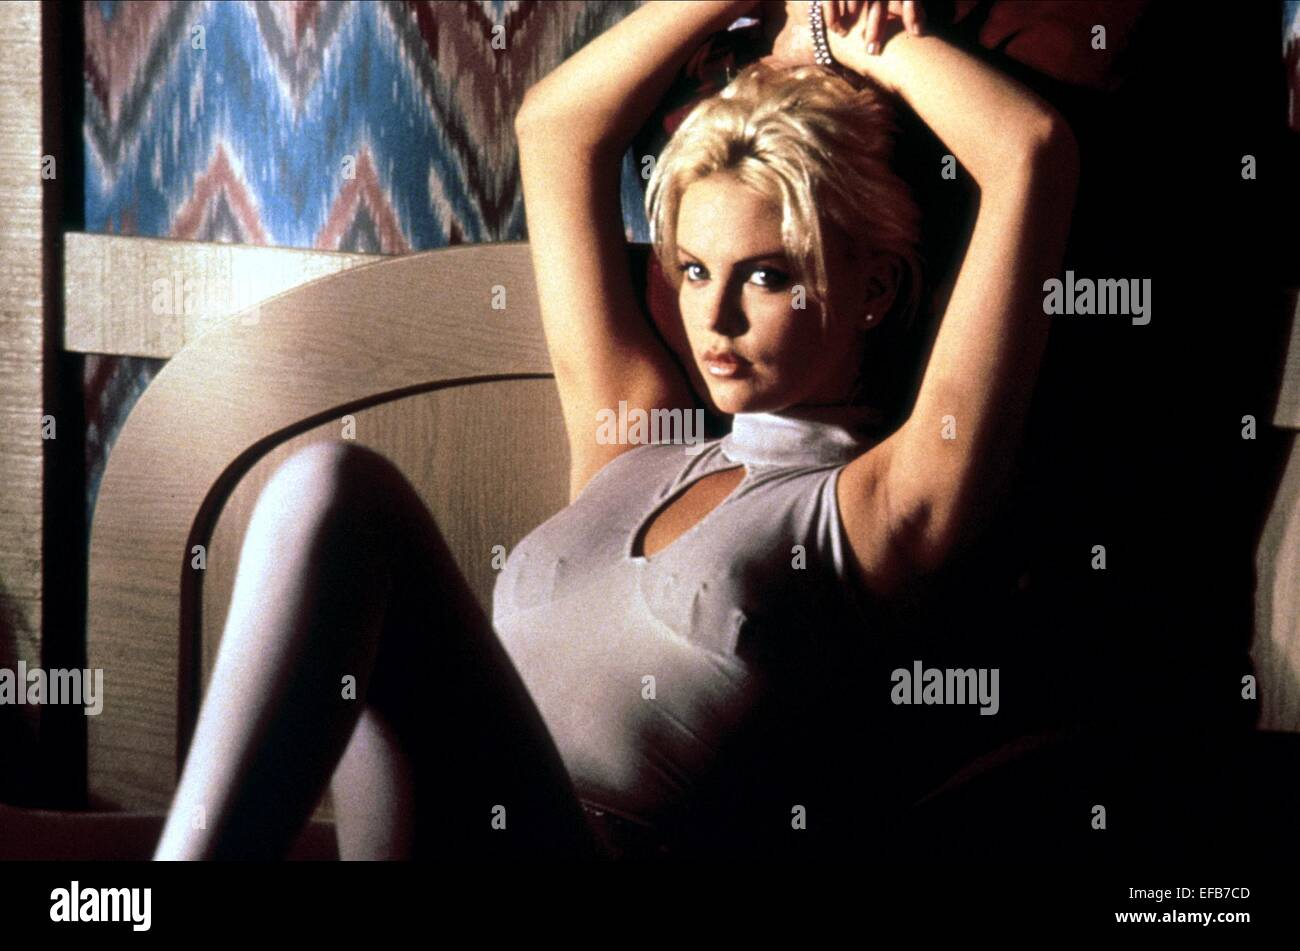 charlize theron days in the valley sex scene